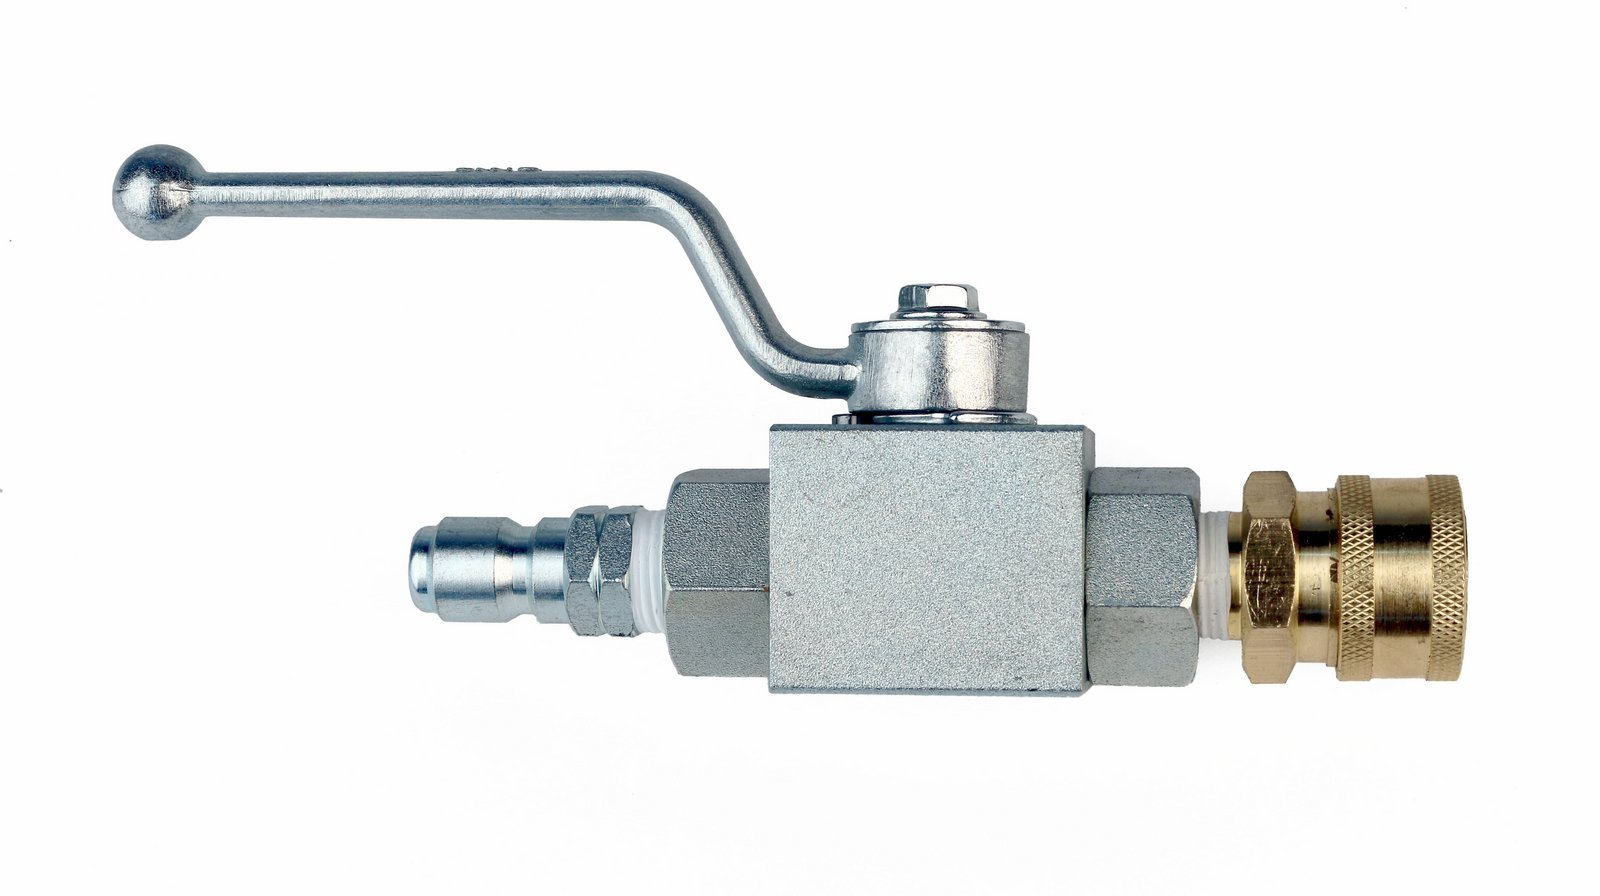 High Pressure Ball Valve Kit 3/8'' Male Plug X 3/8'' Female Quick Connect 4000PSI for High Pressure Hoses by Raptor Blast (Image #2)